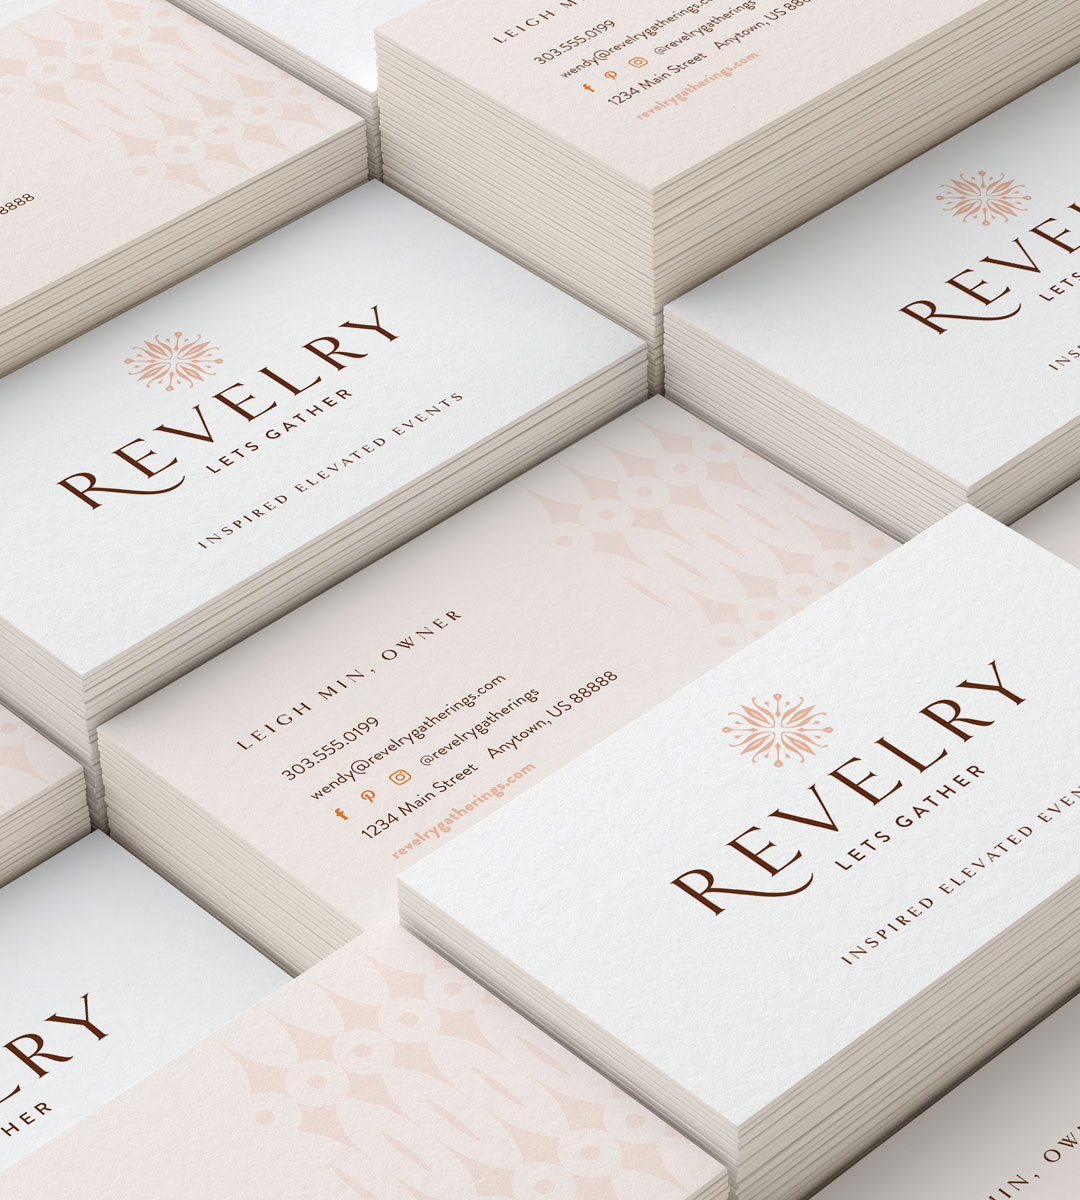 wedding planner business card - Revelery3 - Your Digital Stylist